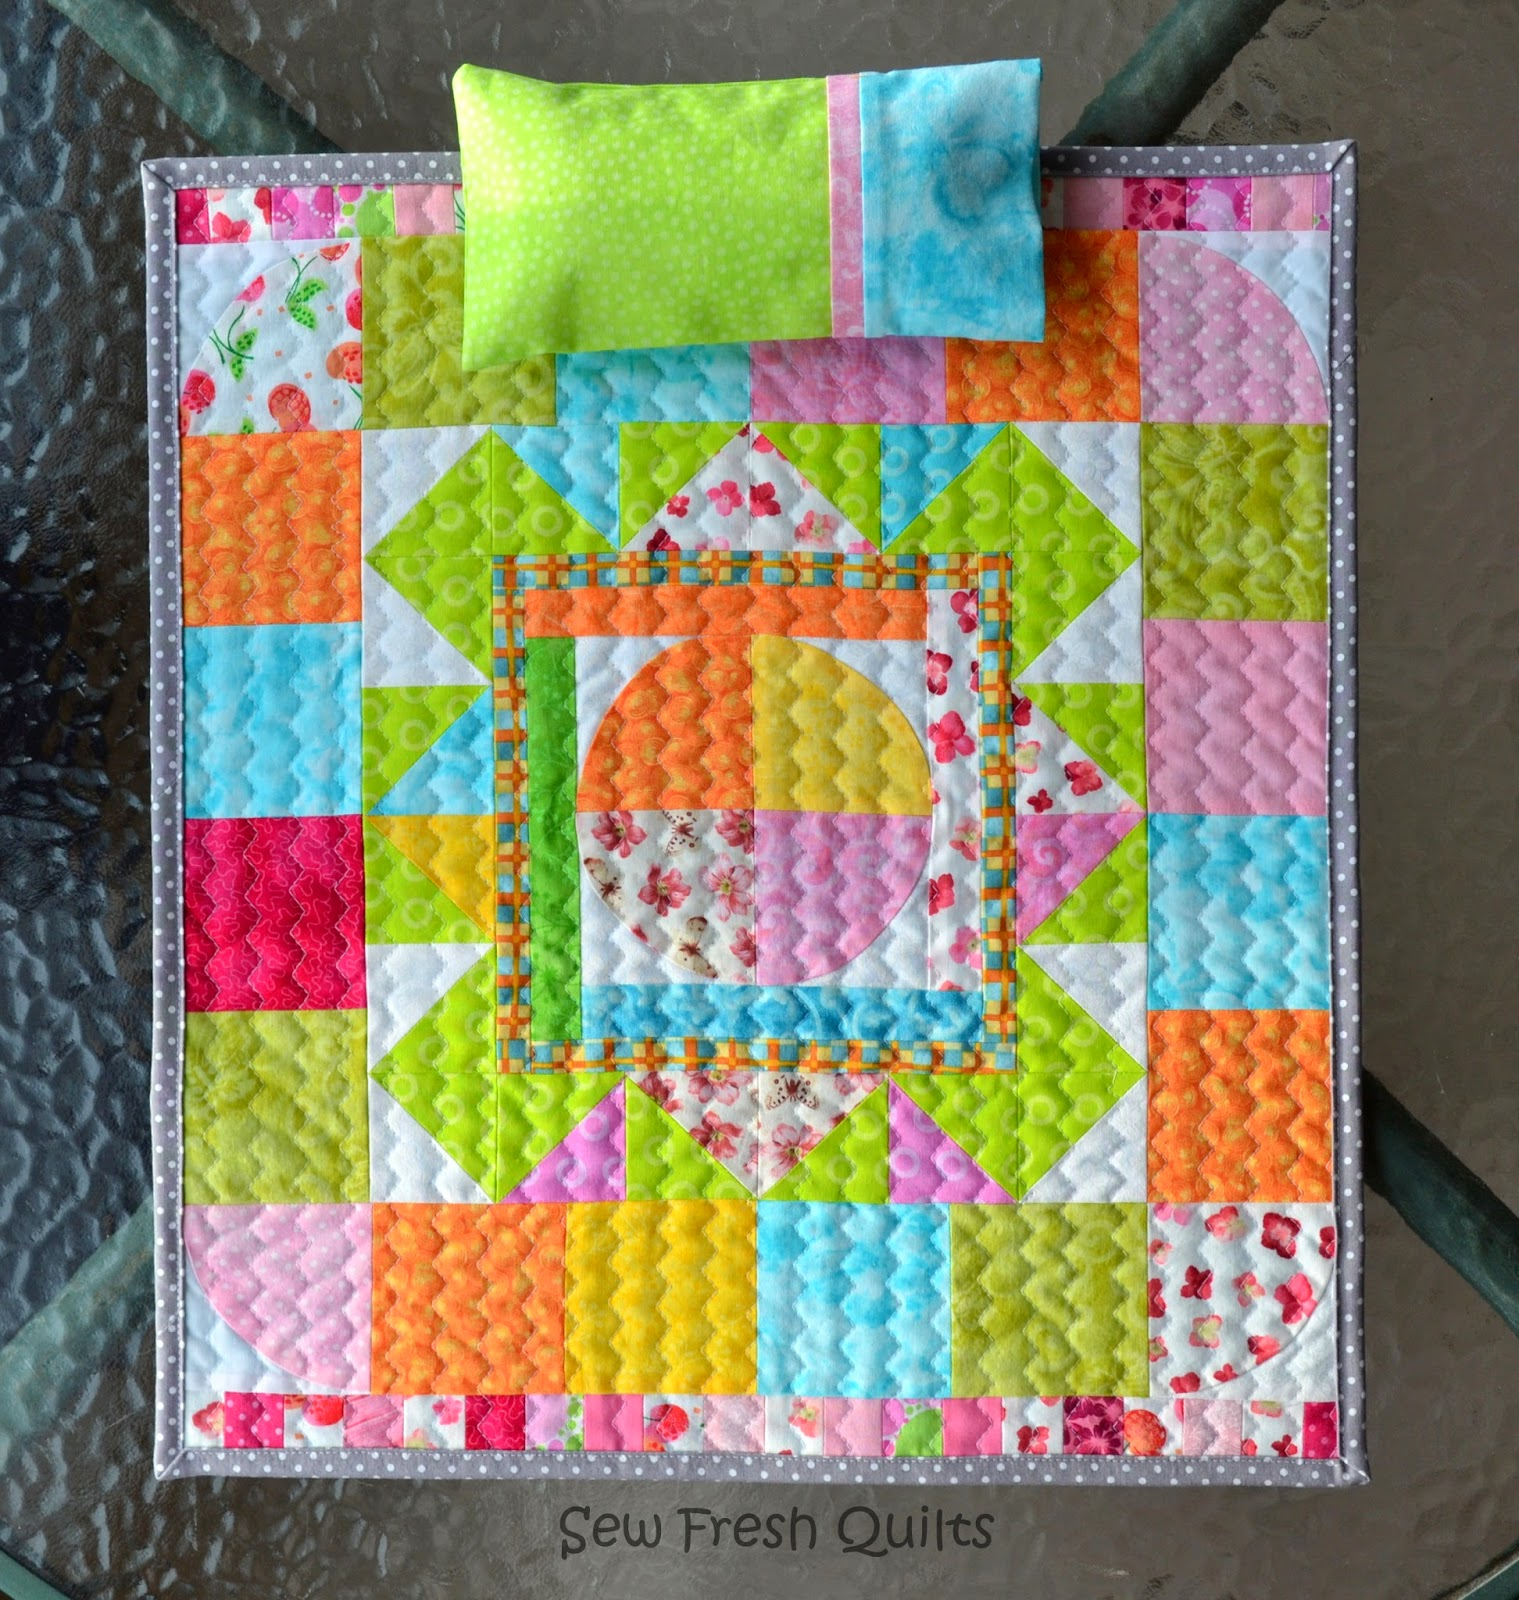 Quilting Ideas For Pillows : Sew Fresh Quilts: Pillow Case Tutorial with French Seams